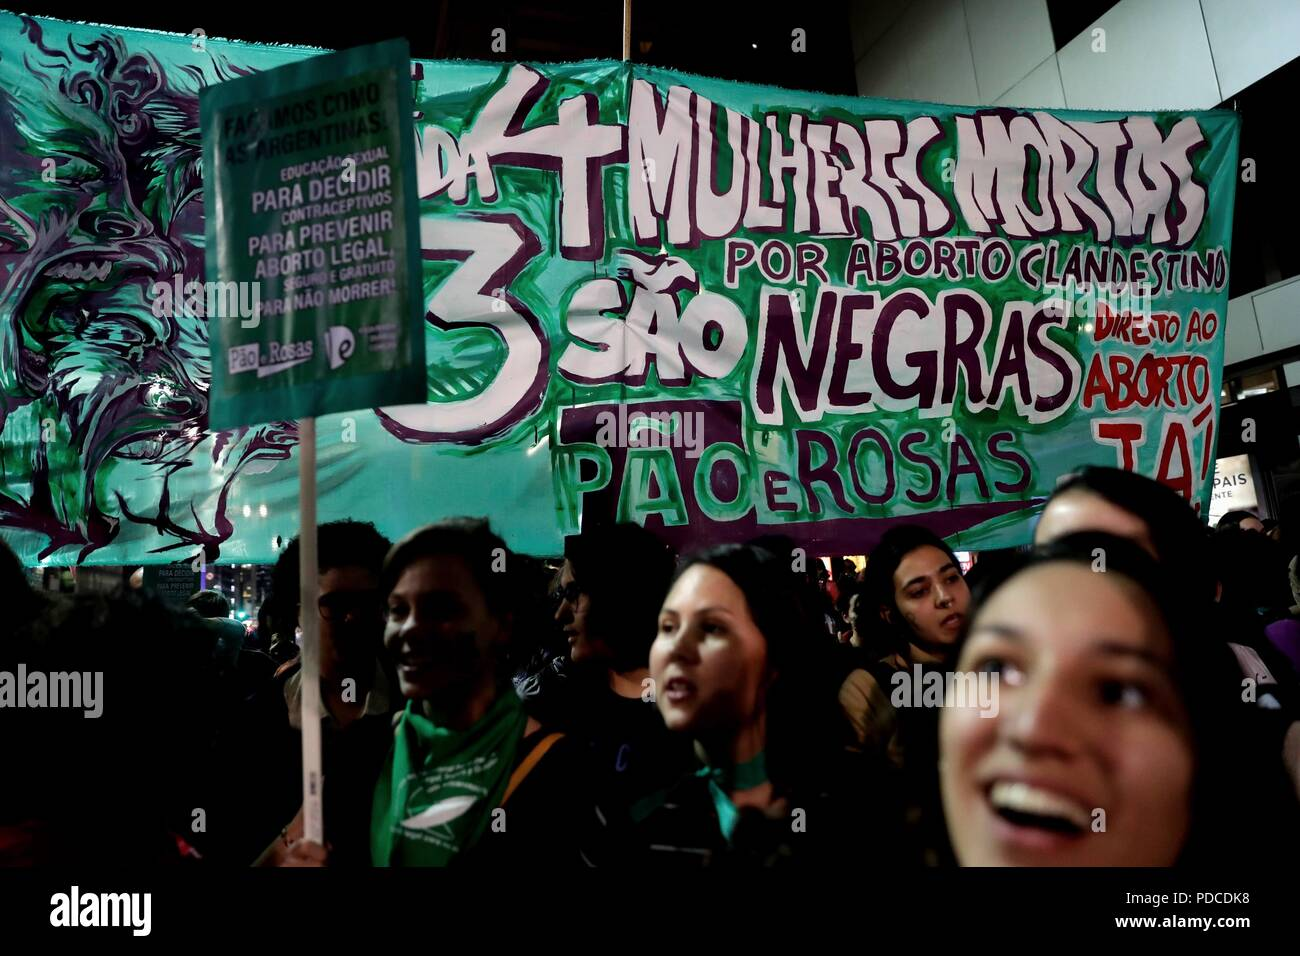 Sao Paulo, Brazil. 08th Aug, 2018. Hundreds of women protest in favor of the legalization of abortion at the gates of the Argentine consulate in Sao Paulo, Brazil, 08 August 2018. Argentina's Senate will debate a bill that would legalize abortion for pregnancies up to fourteen weeks. If passed the bill, already approved by the chamber of deputies, would make Argentina, a predominantly Catholic nation, the most populous nation in Latin America to legalize abortion. Credit: Fernando Bizerra Jr./EFE/Alamy Live News - Stock Image